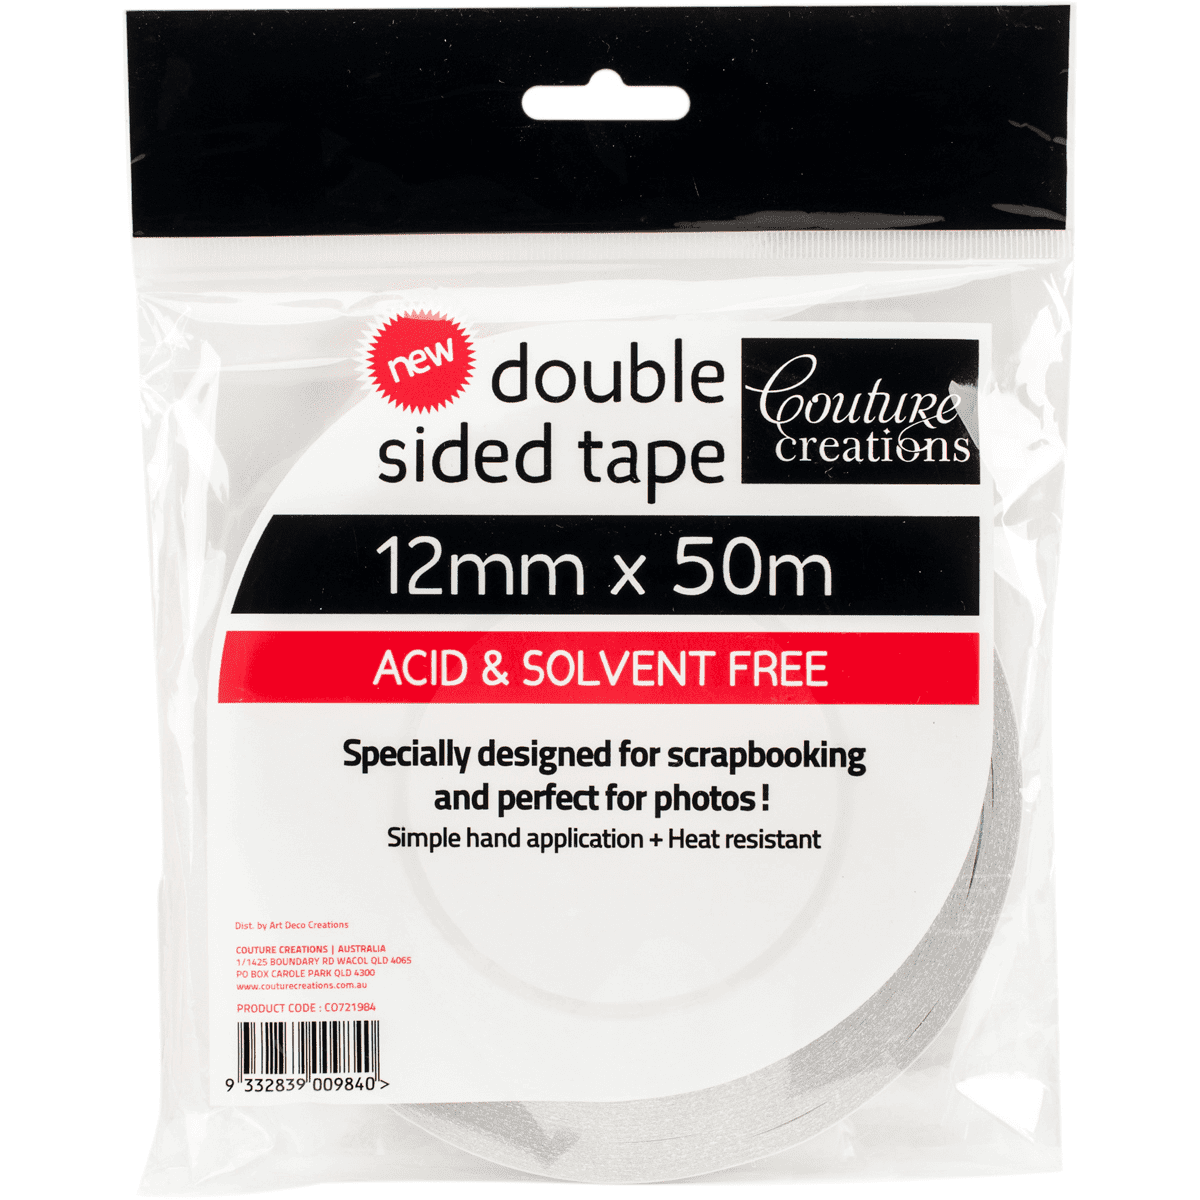 Couture Creations double sided tape 12mm